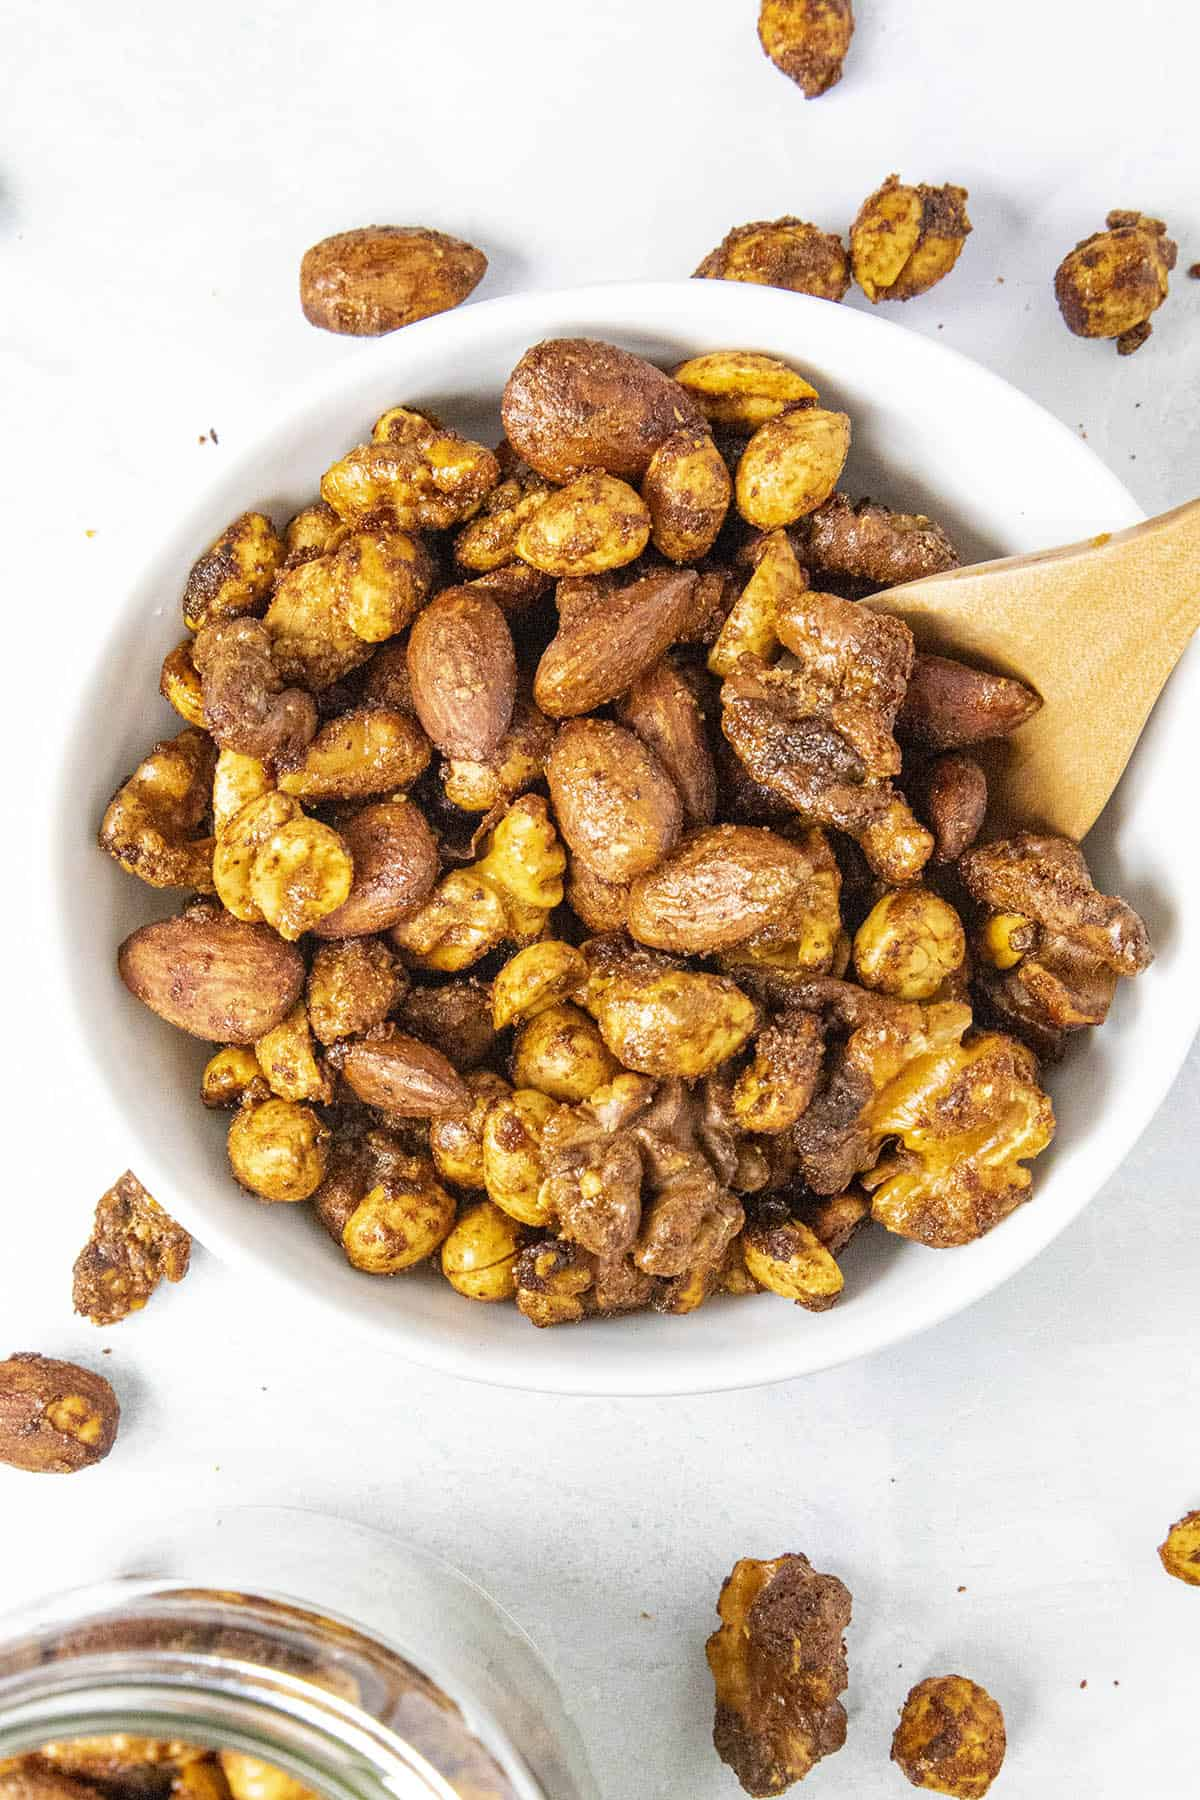 Spiced Nuts in a bowl